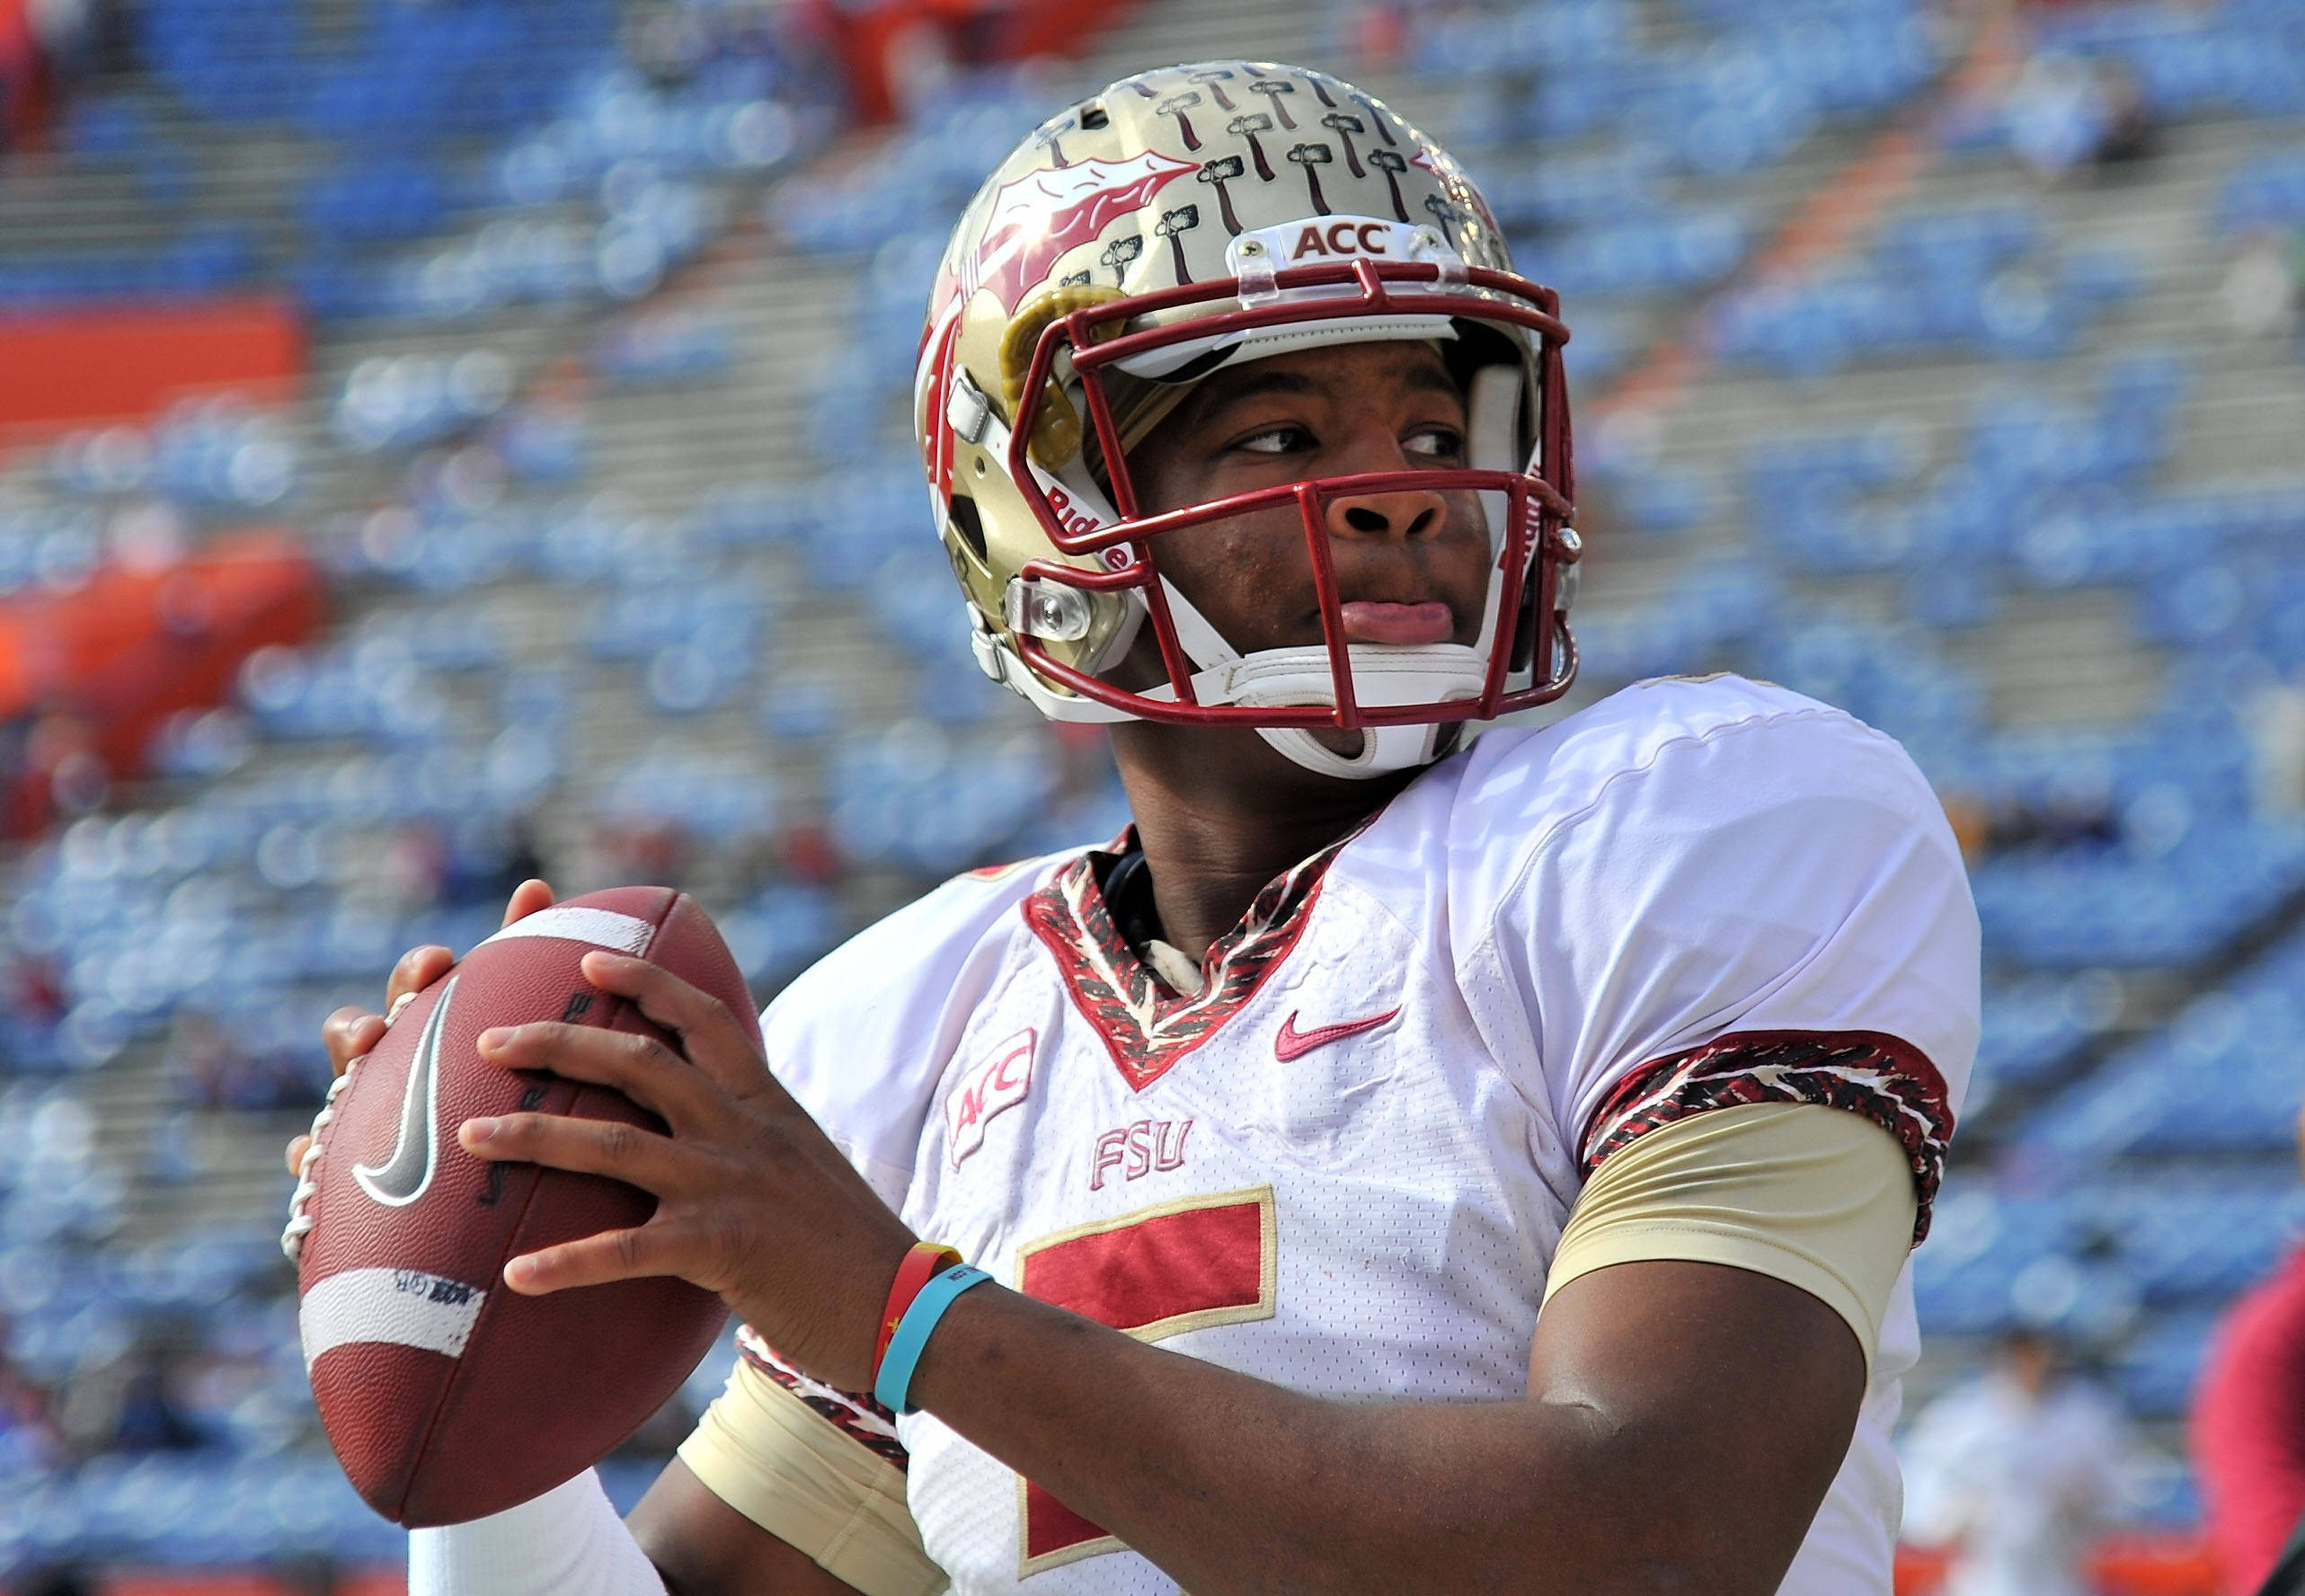 Jameis Winston (5) warms up before a game. Mandatory Credit: Steve Mitchell-USA TODAY Sports